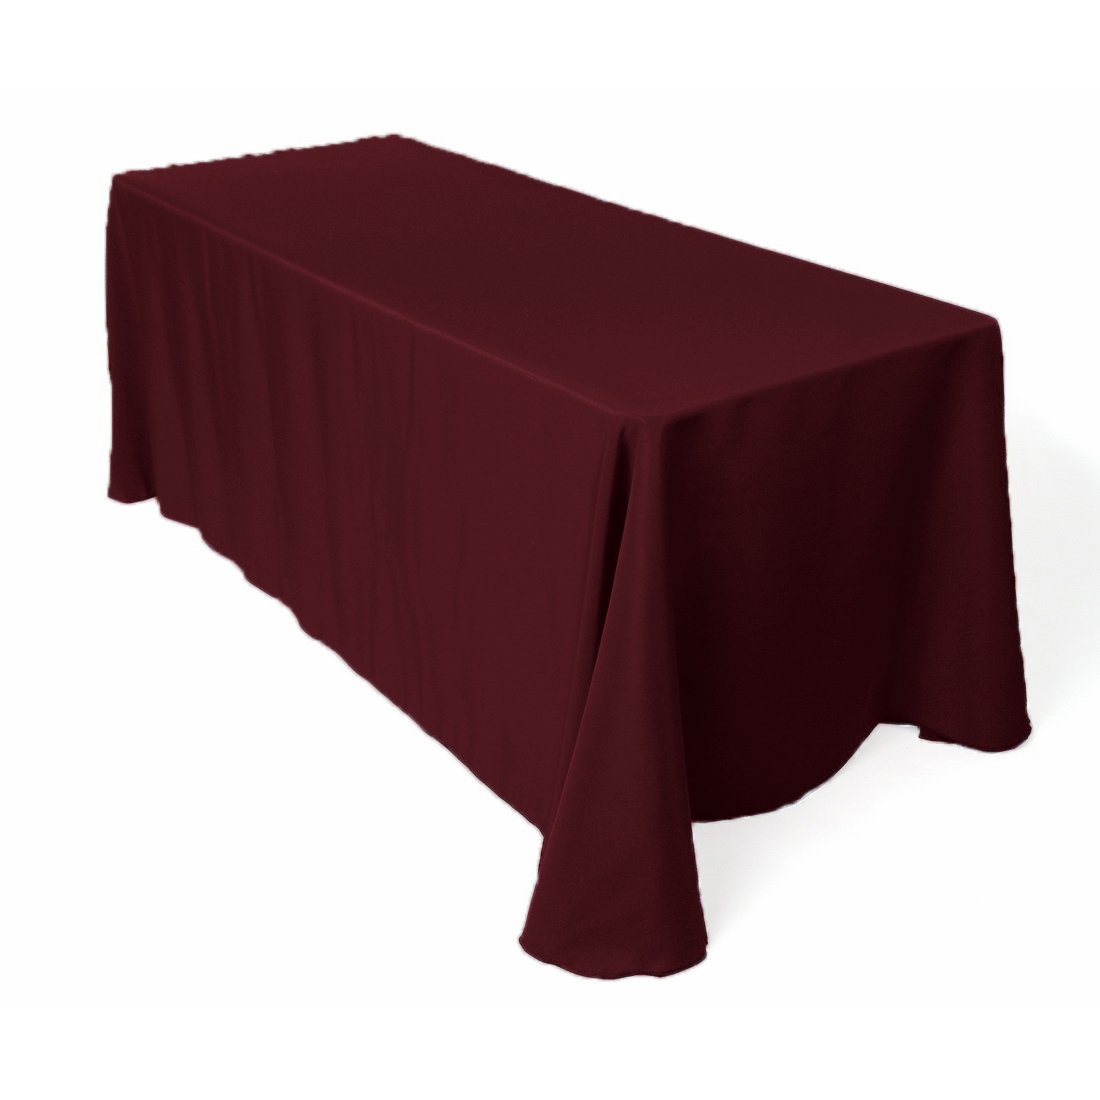 Jcpenney Table: Jcpenney Tablecloths